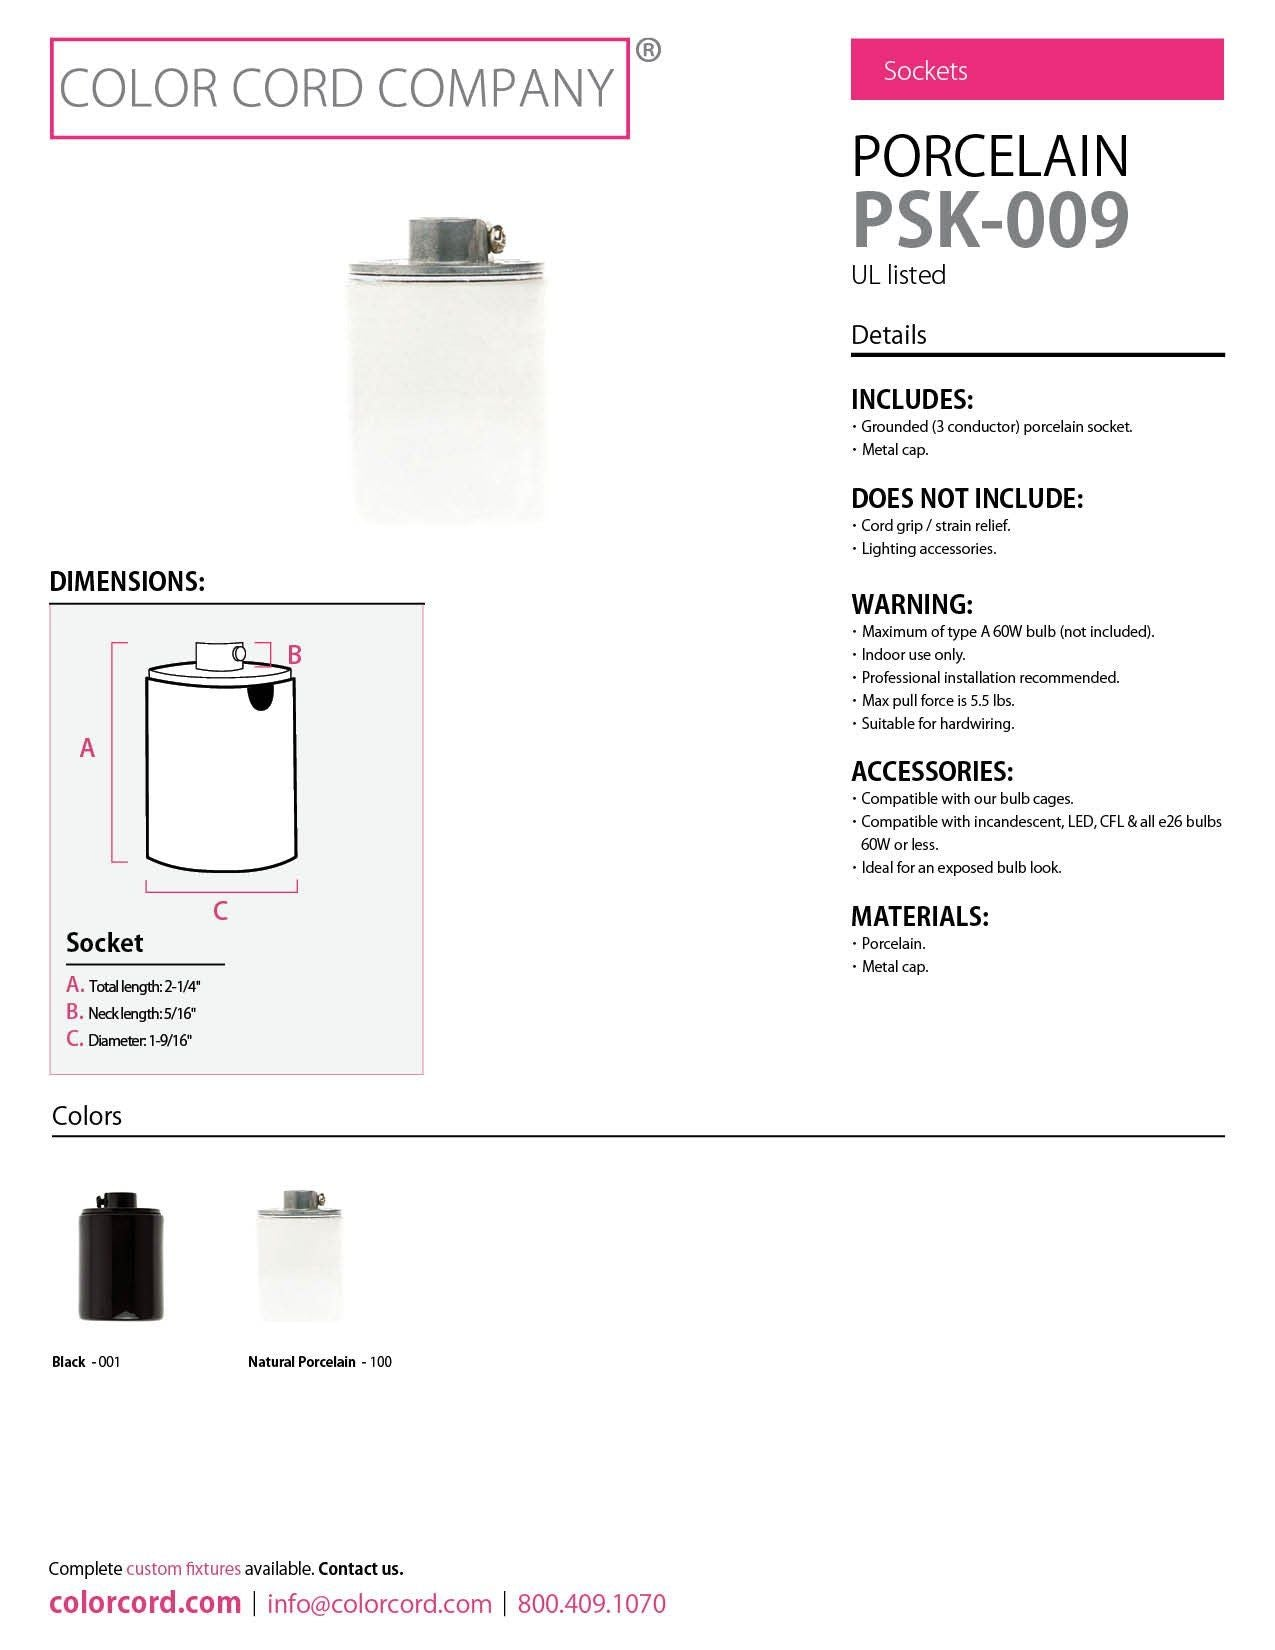 Porcelain Light Fixture Wiring Diagram List Of Schematic Circuit 4 Pin Cfl Grounded Socket Black Color Cord Company Rh Colorcord Com